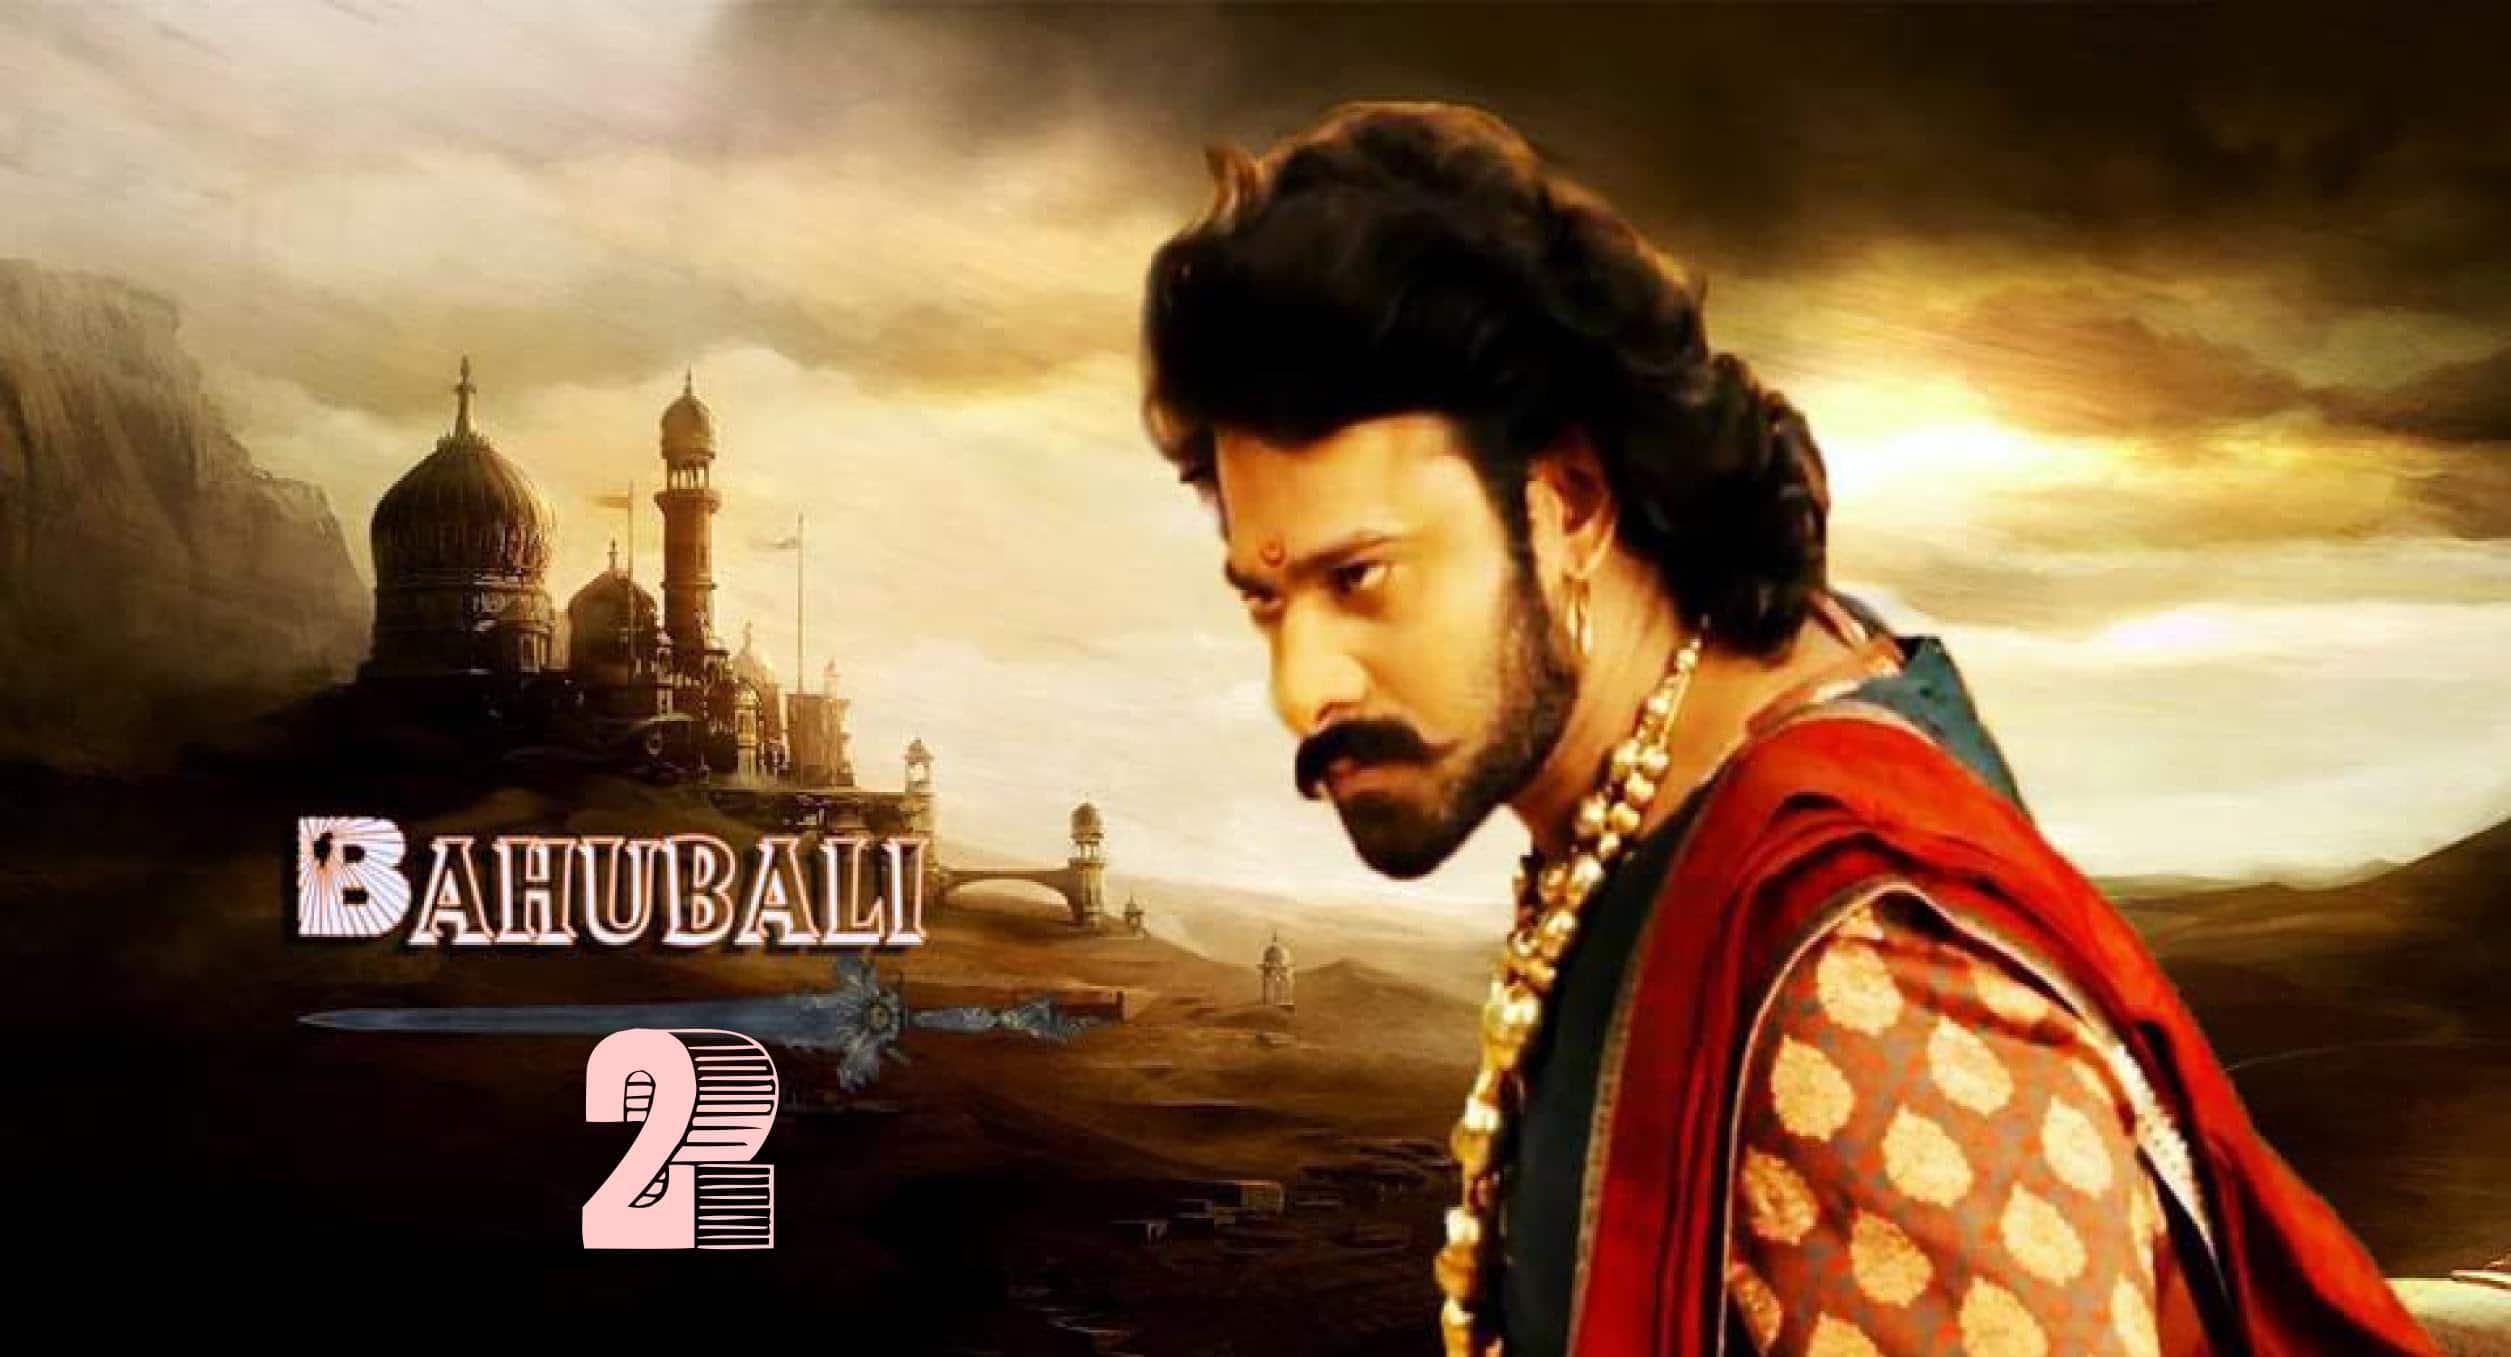 prabhas birthday gift: the first look of 'baahubali 2' - desimartini